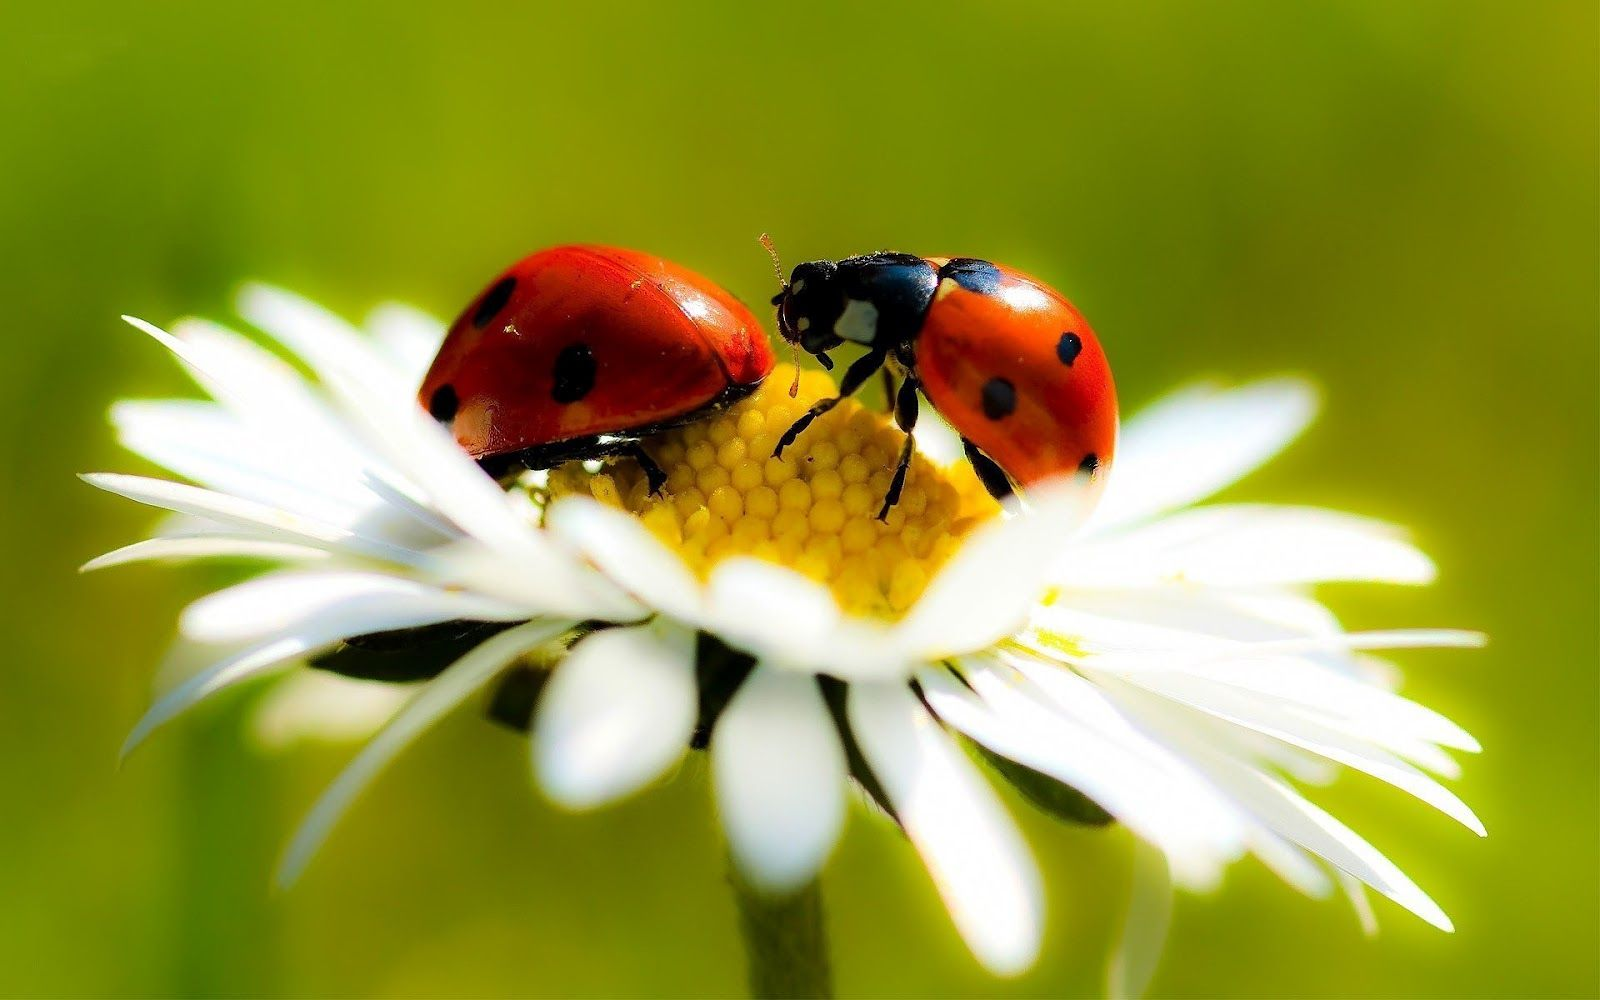 images of ladybugs | hd-ladybug-wallpaper-with-two-ladybugs-on-a